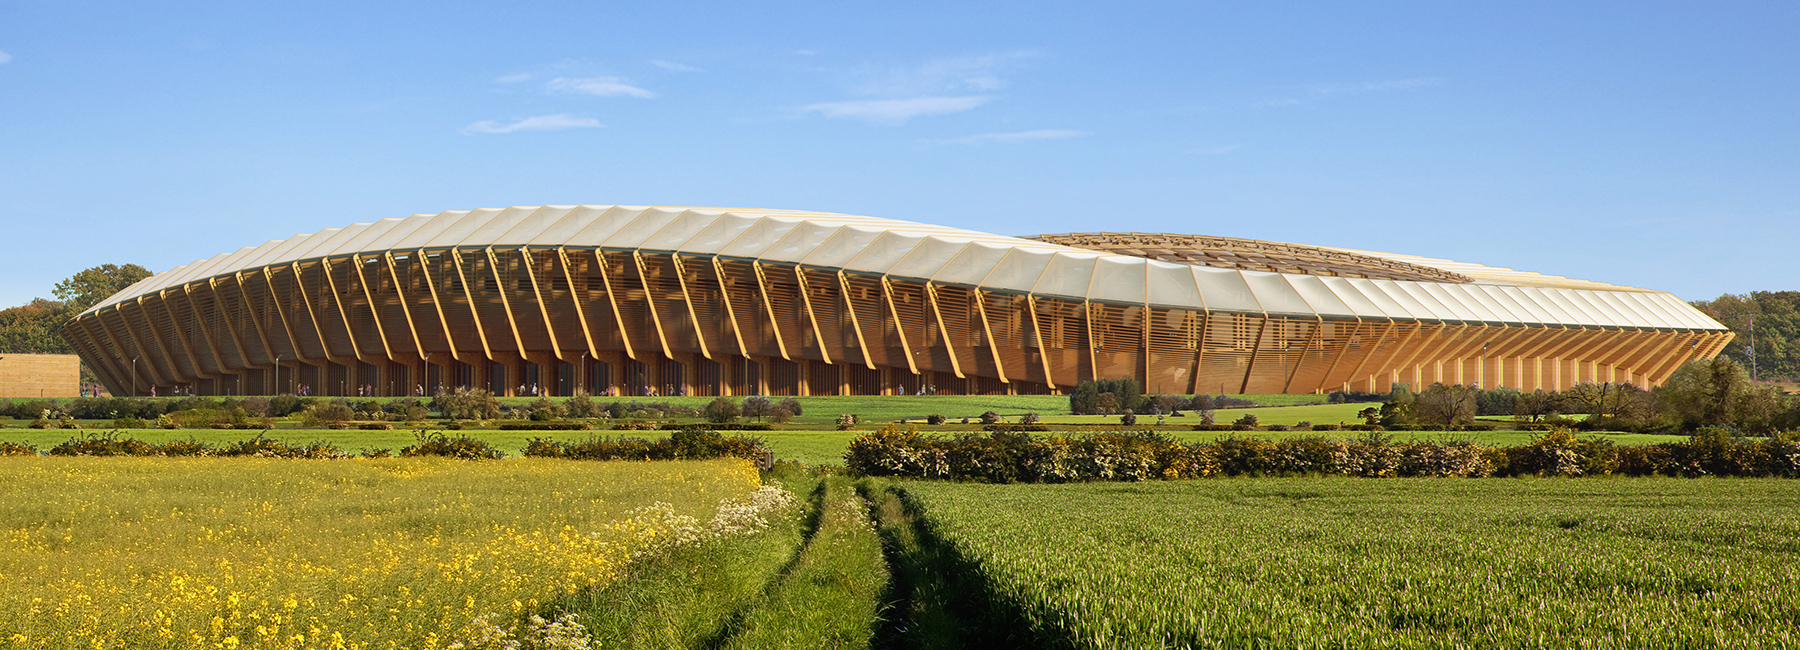 FOREST GREEN ROVERS STADIUM (Stroud, Inghilterra, 2018-20) Arch. Zaha Hadid Associated (postumo)